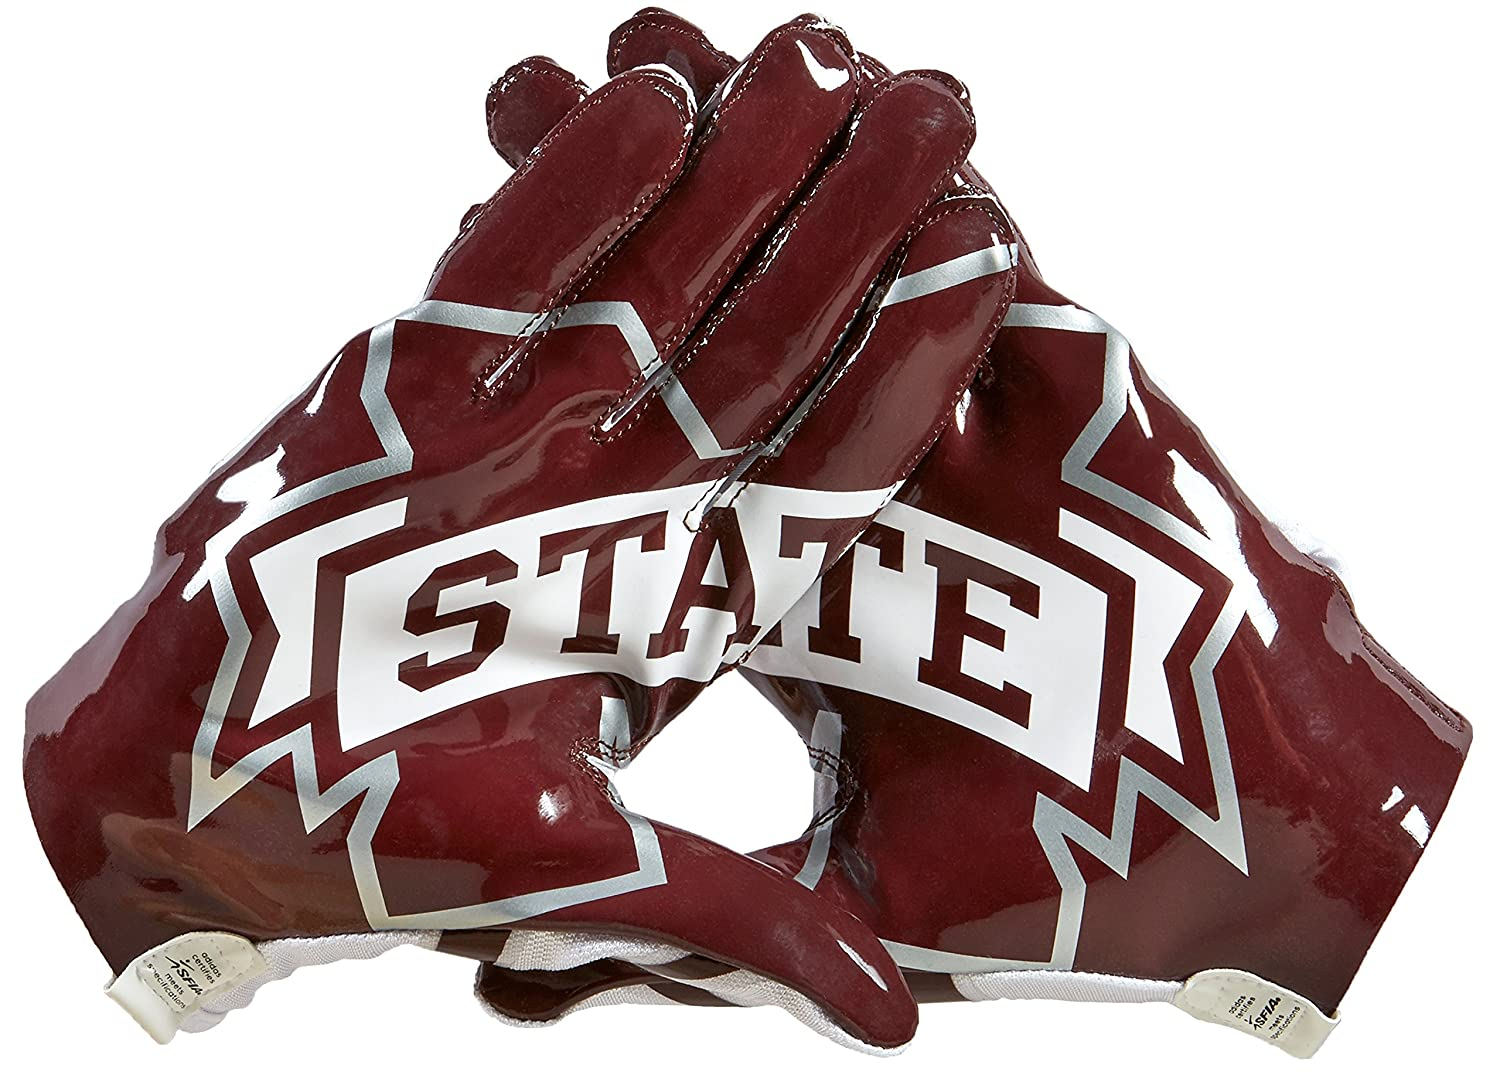 size 40 eb31b 427dc Amazon.com   NCAA Mississippi State Bulldogs Adizero 5-Star 6.0 Football  Gloves, White Maroon, X-Large   Sports   Outdoors